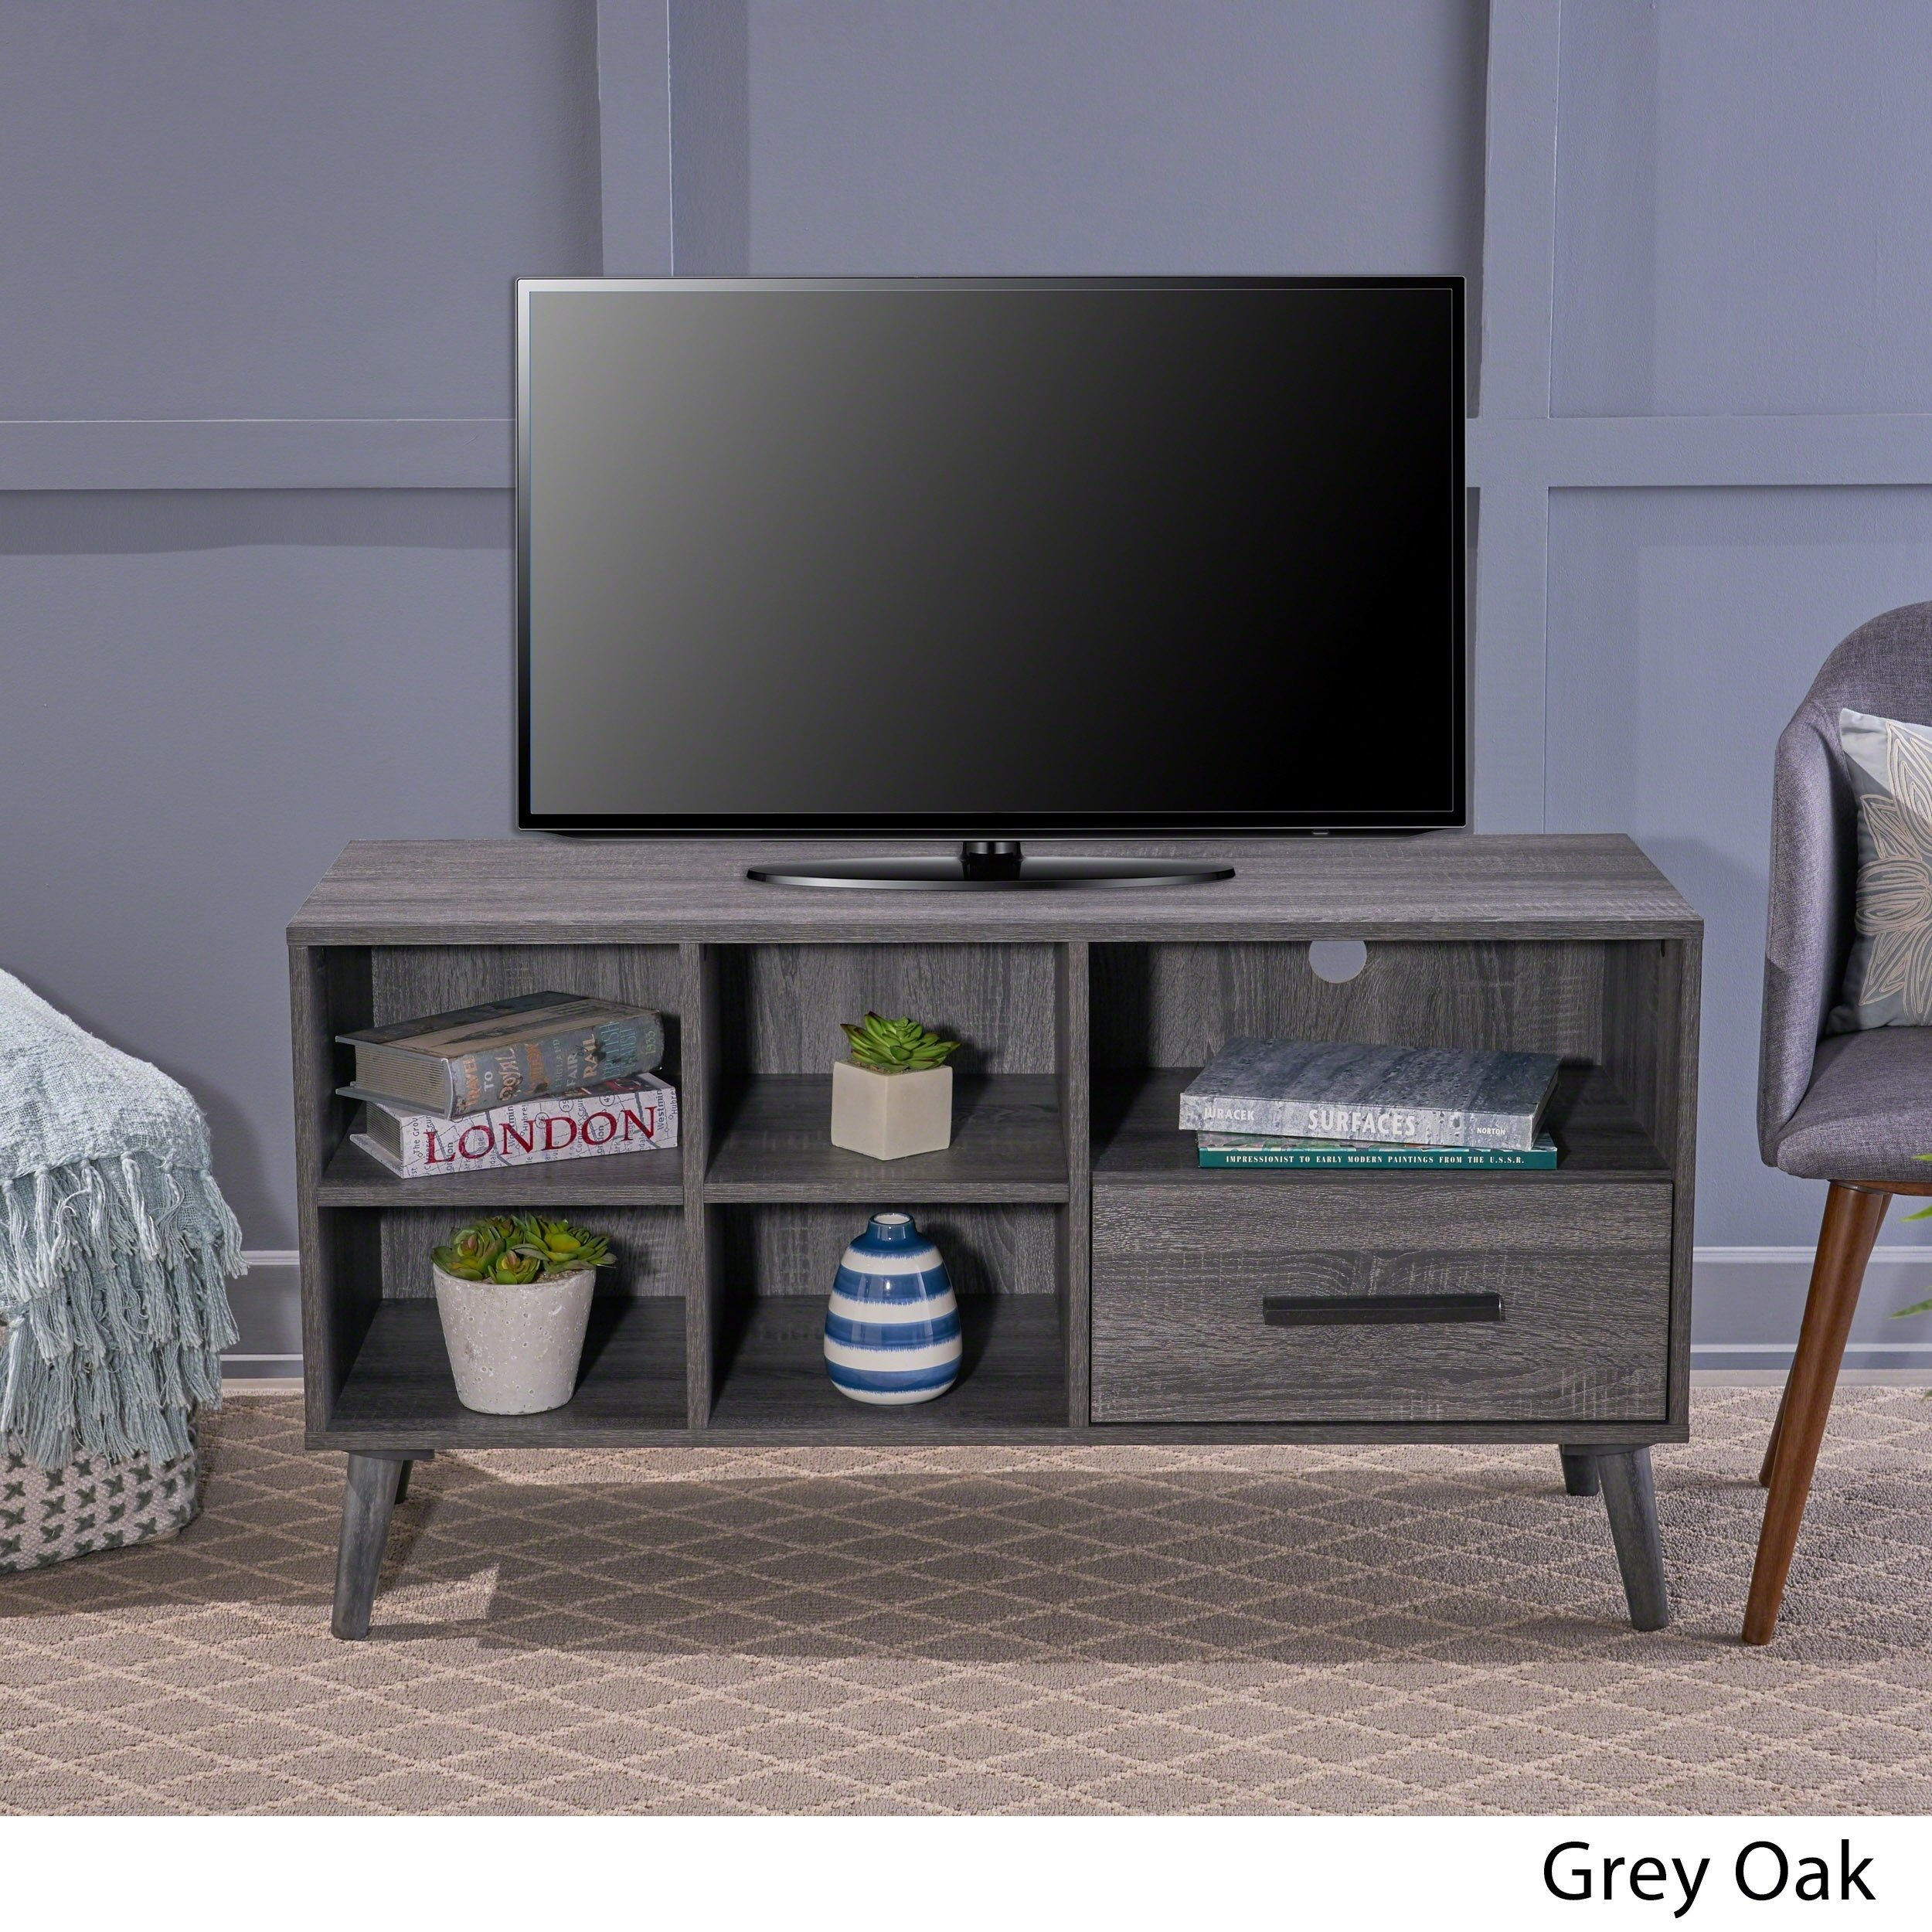 Buy Grey, 42 – 60 Inches Tv Stands & Entertainment Centers Online At Intended For Rowan 45 Inch Tv Stands (View 7 of 30)